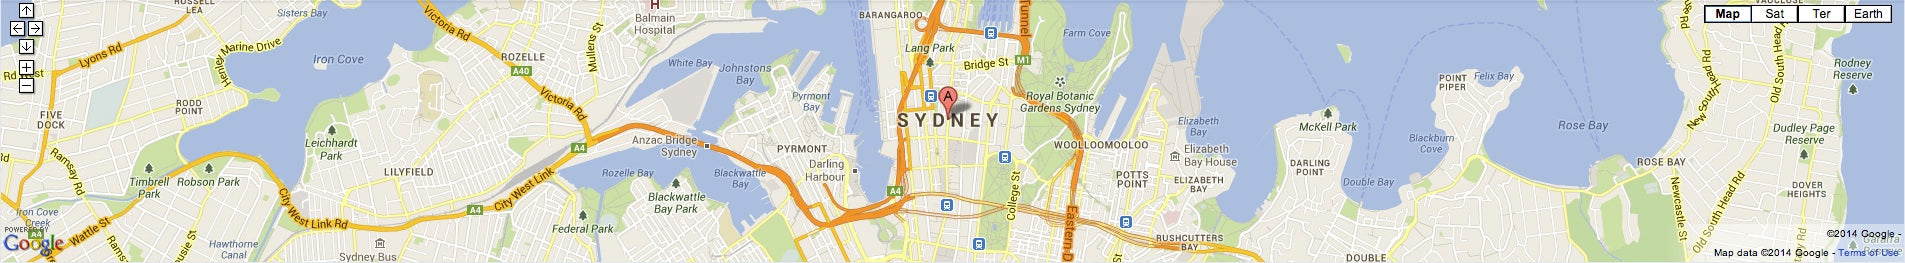 Sydney information security